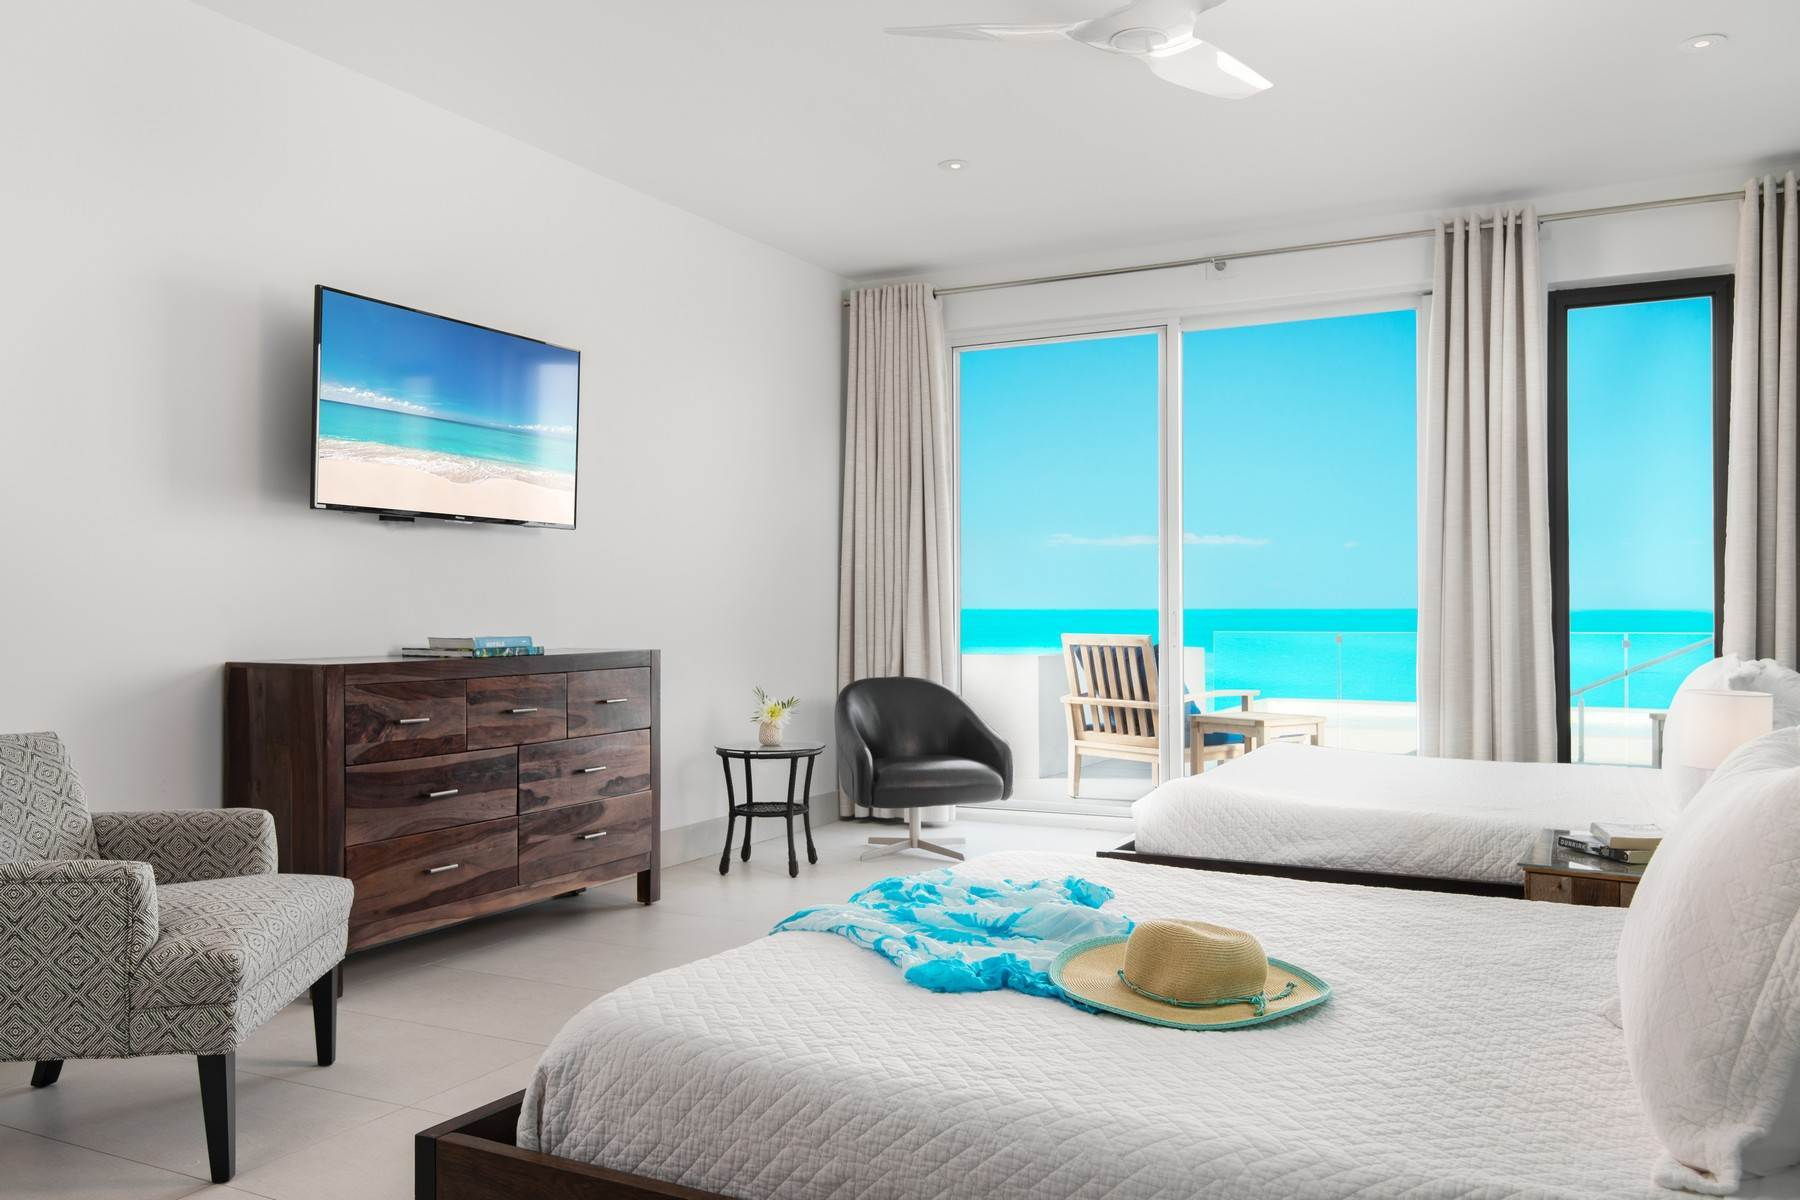 17. Single Family Homes for Sale at Tip Of The Tail Villa Turtle Tail, Providenciales Turks And Caicos Islands